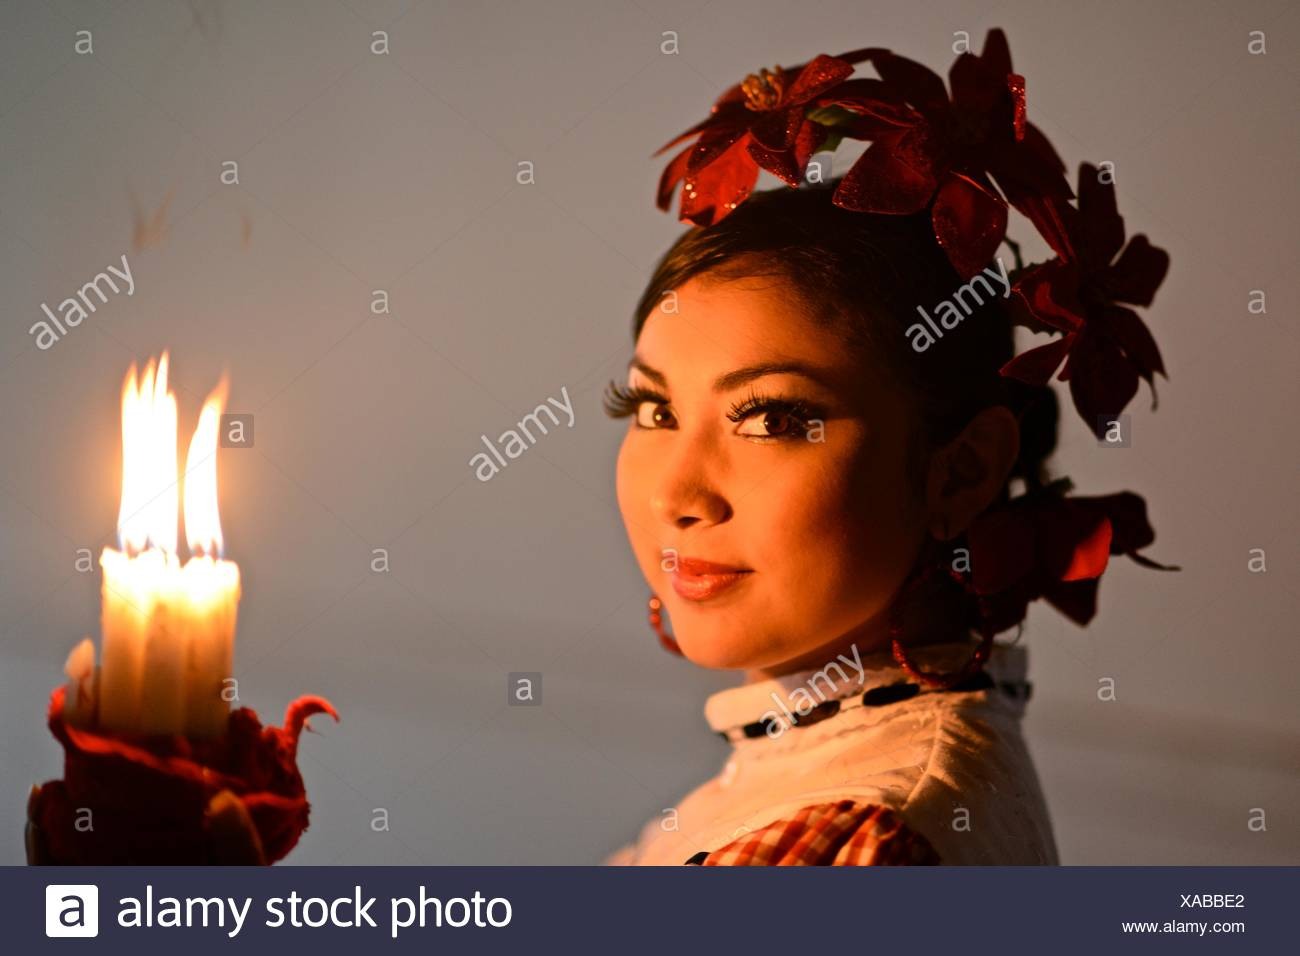 A Cumbia dancer holding candles and looking at camera. - Stock Image